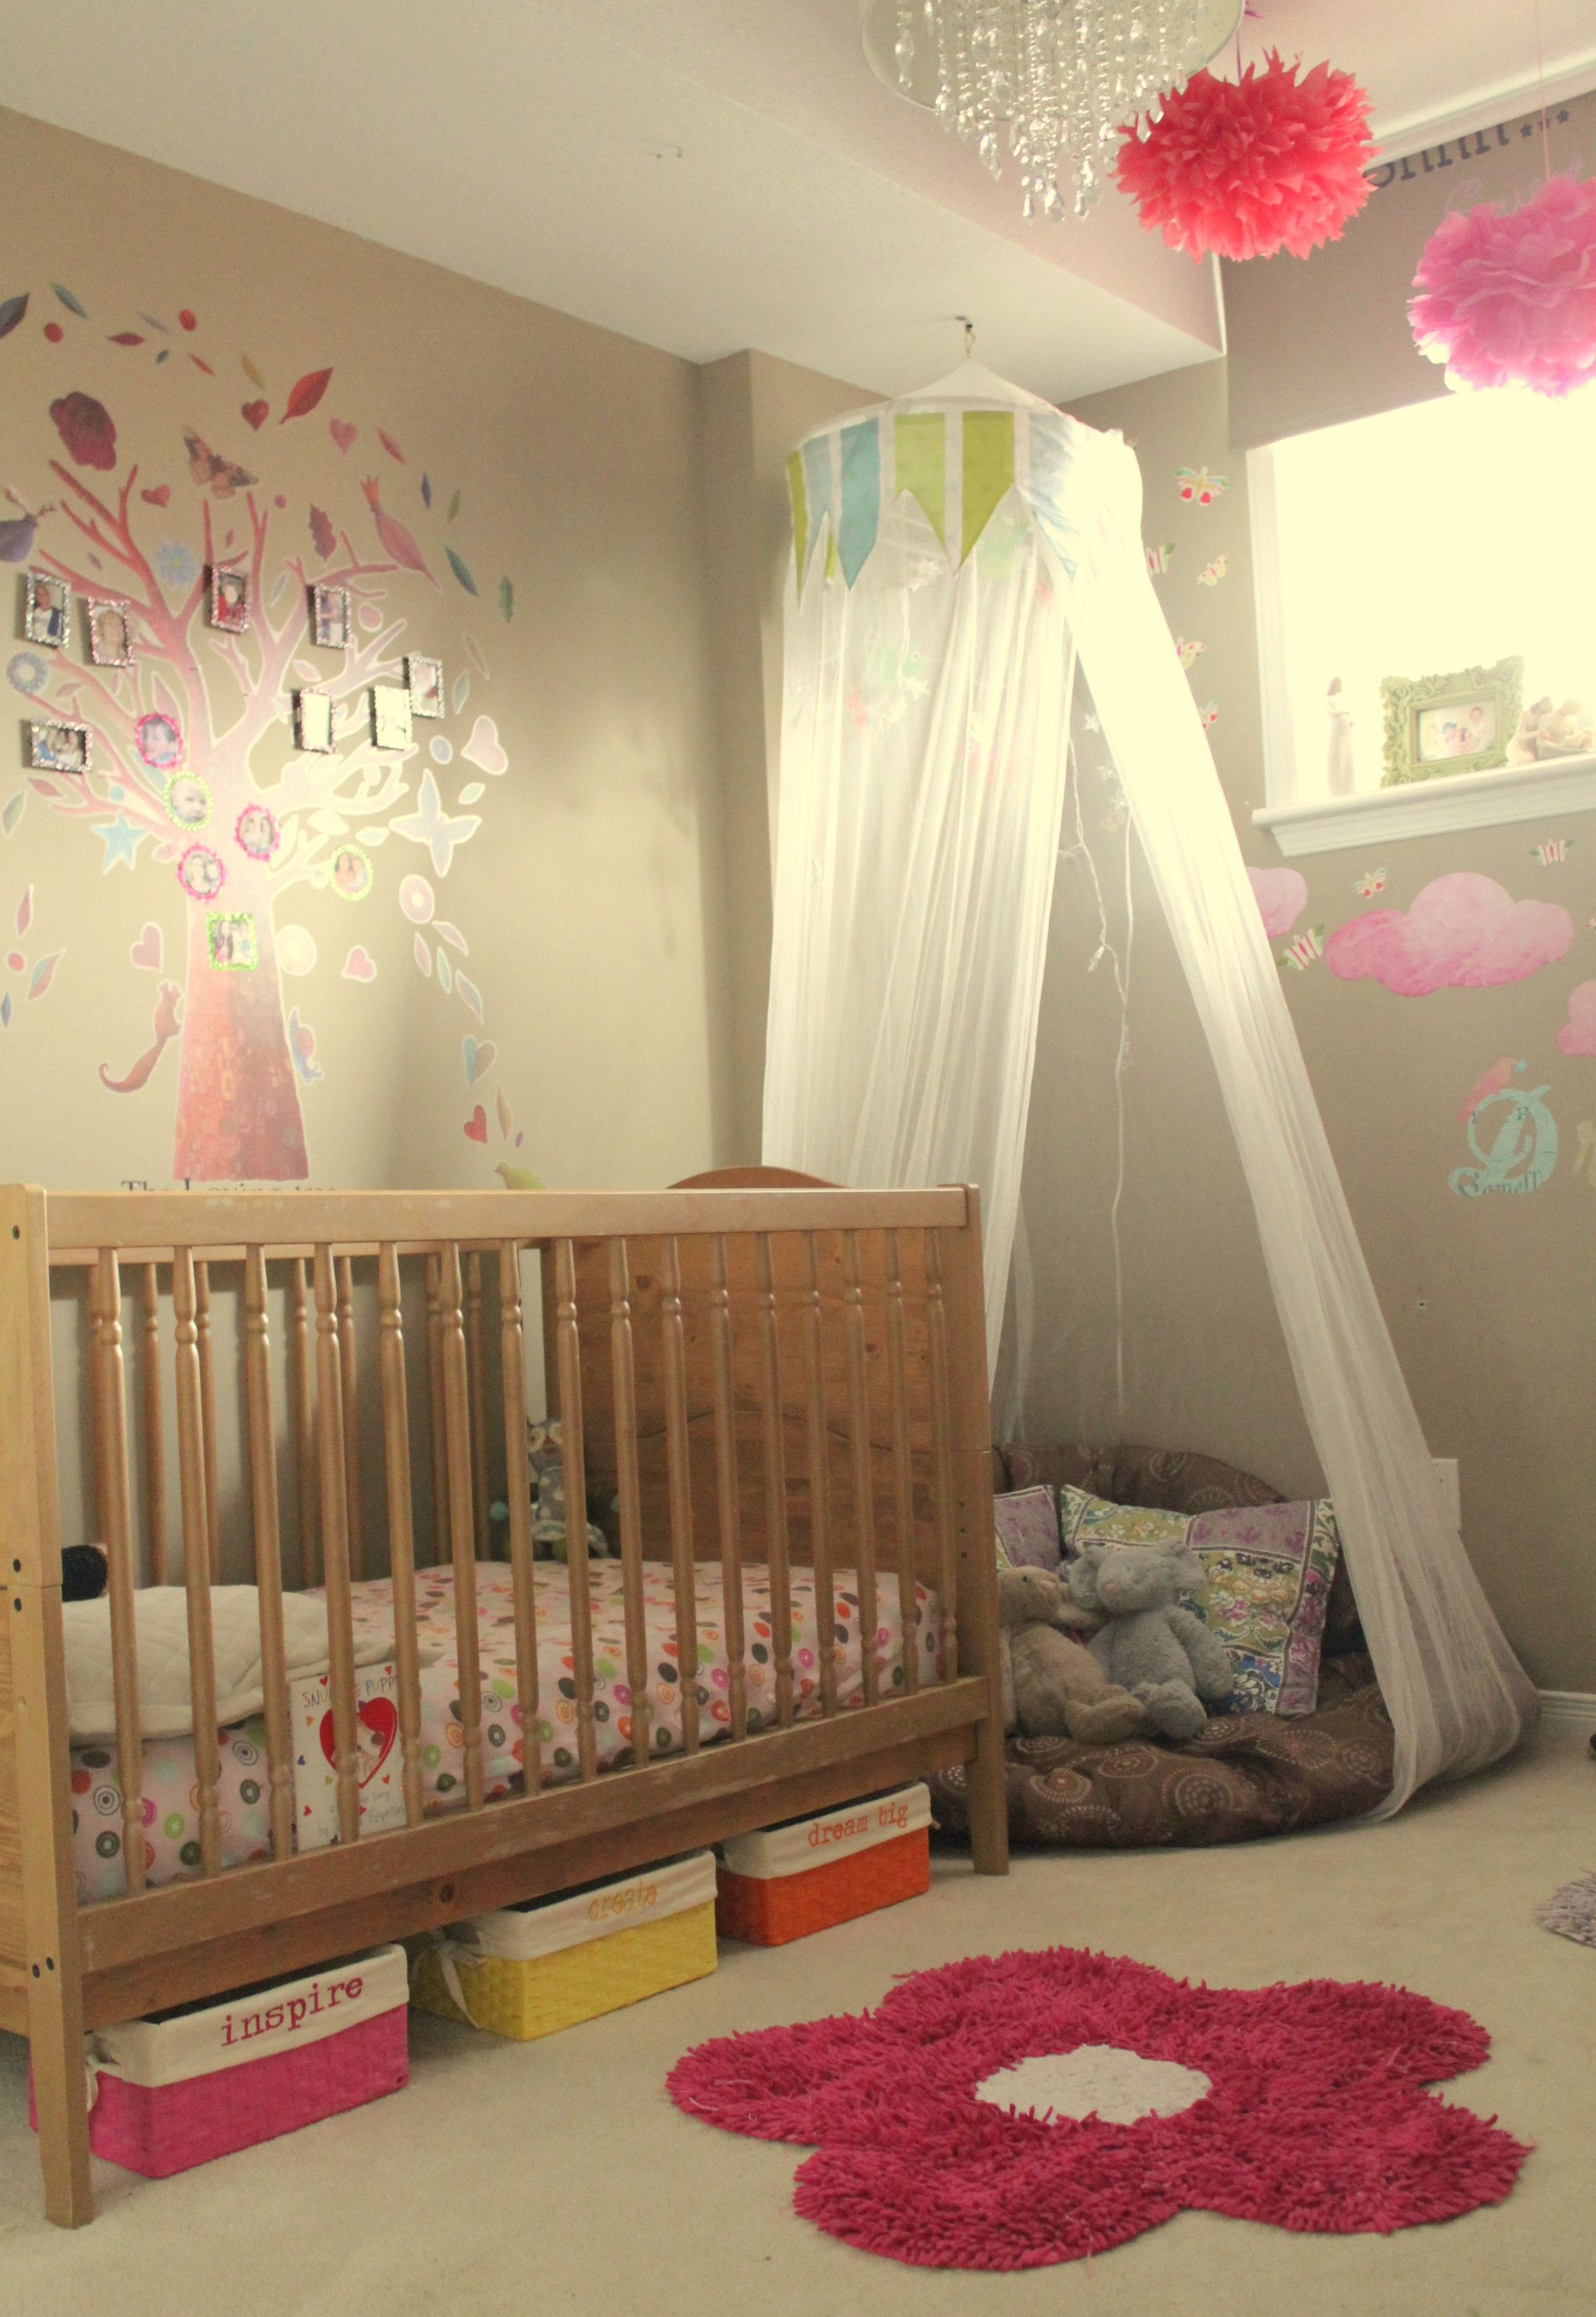 Toddler Girl Room Decor A Chic Toddler Room Fit For A Sweet Little Princess  Butterfly